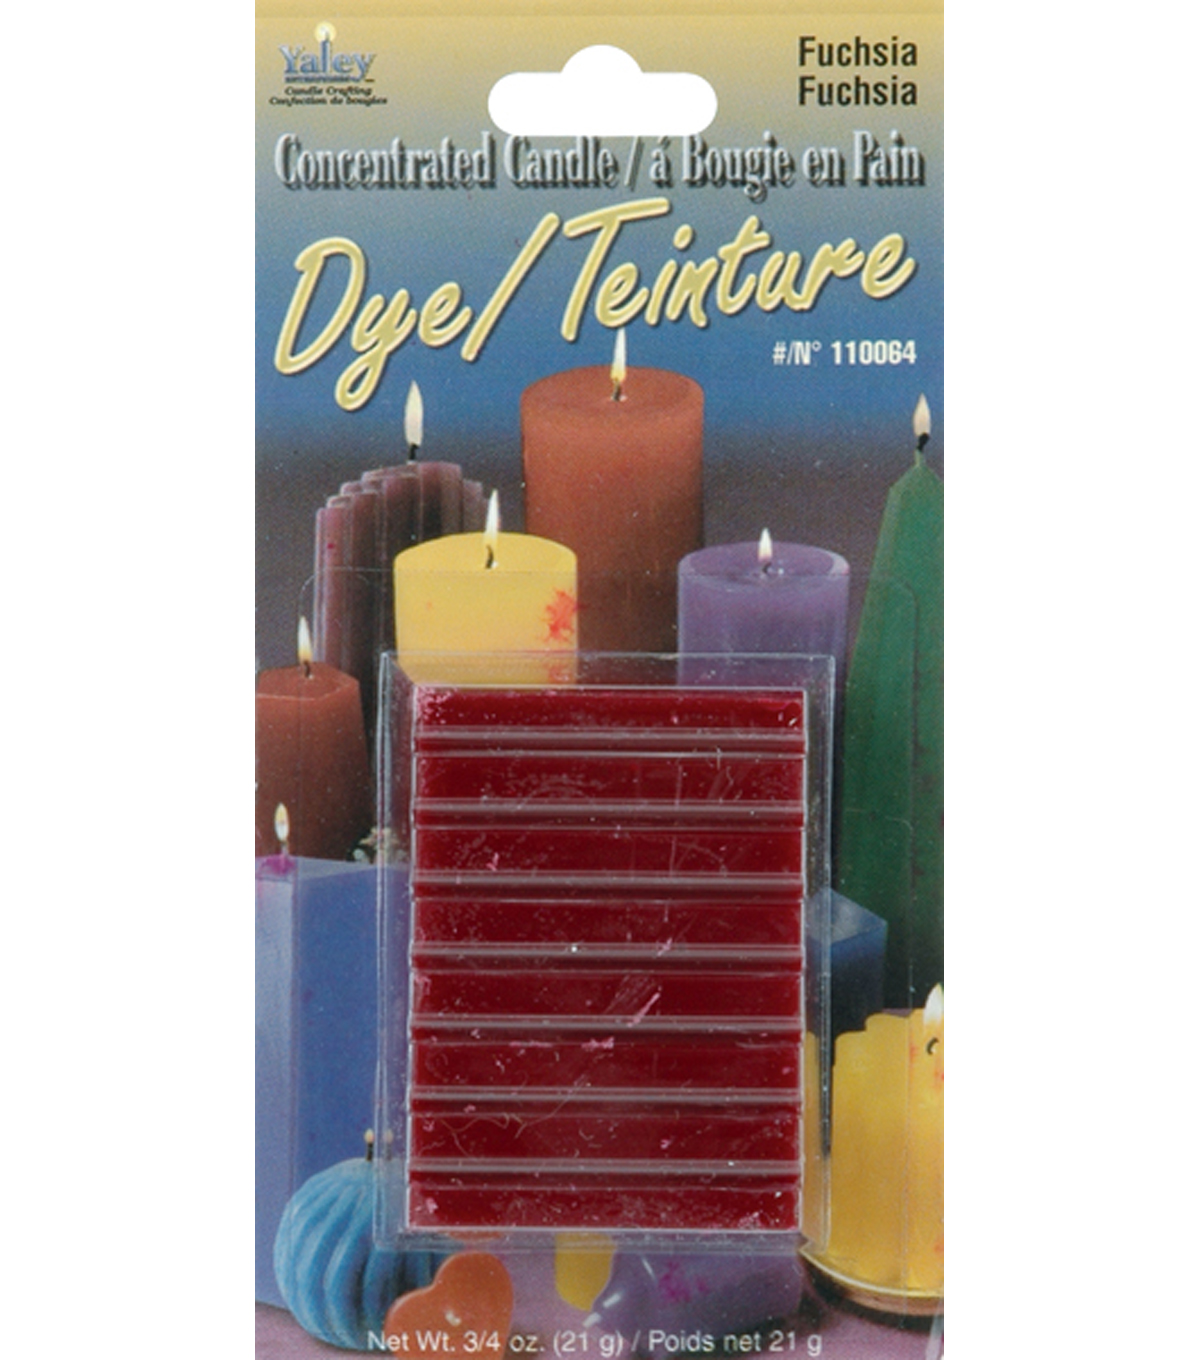 Yaley Candle Dye Blocks-.75 oz.